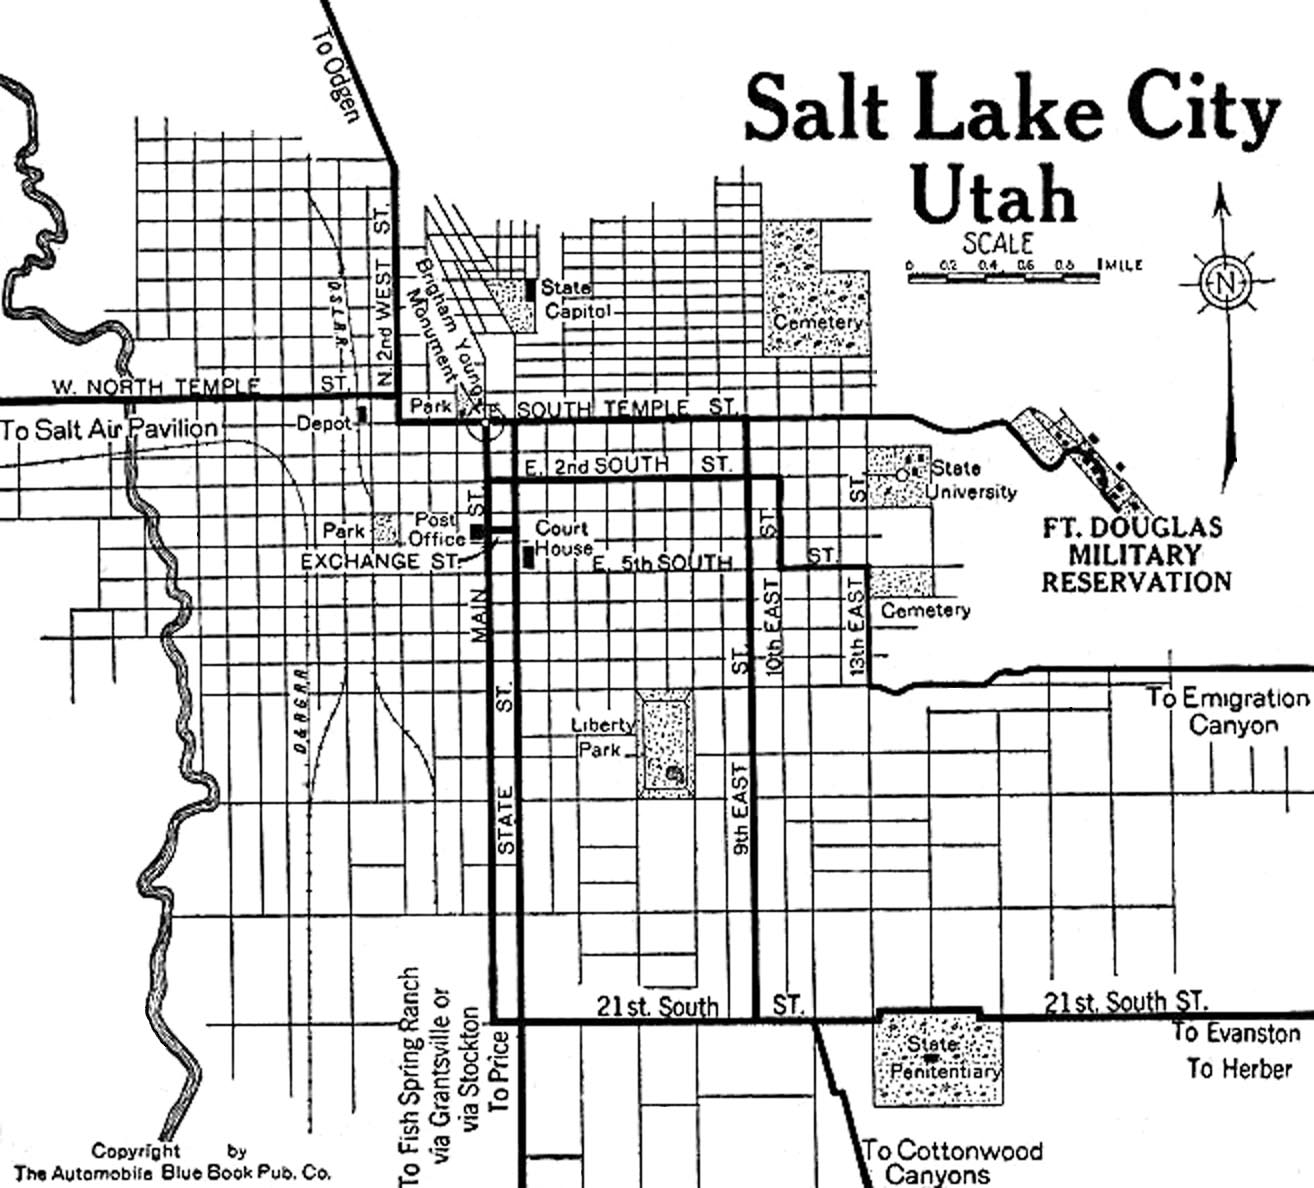 Utah City Maps At AmericanRoadscom - Salt lake city map of us